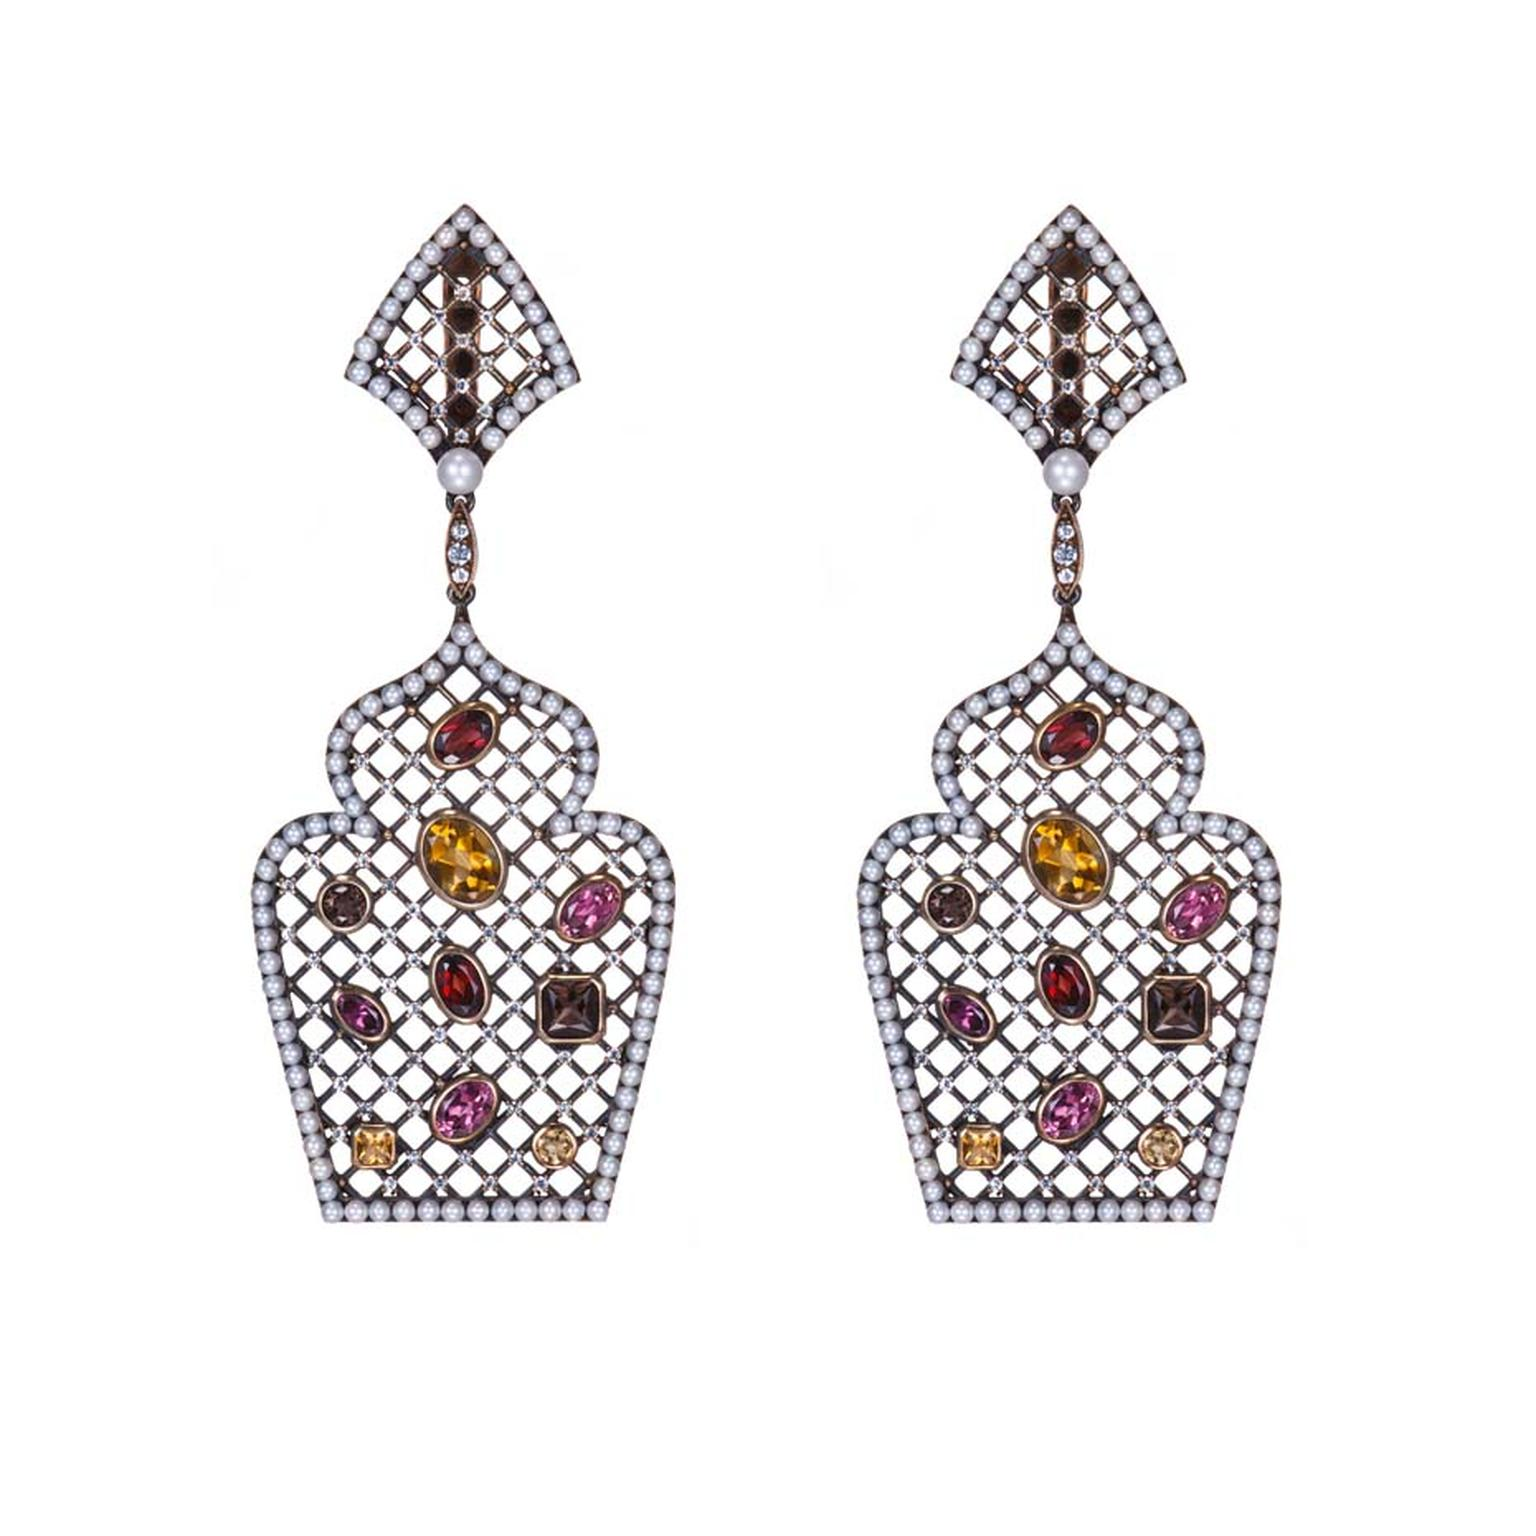 Petr Axenoff silver Radmila earrings with pearls, citrine, garnets, sapphires and amethysts